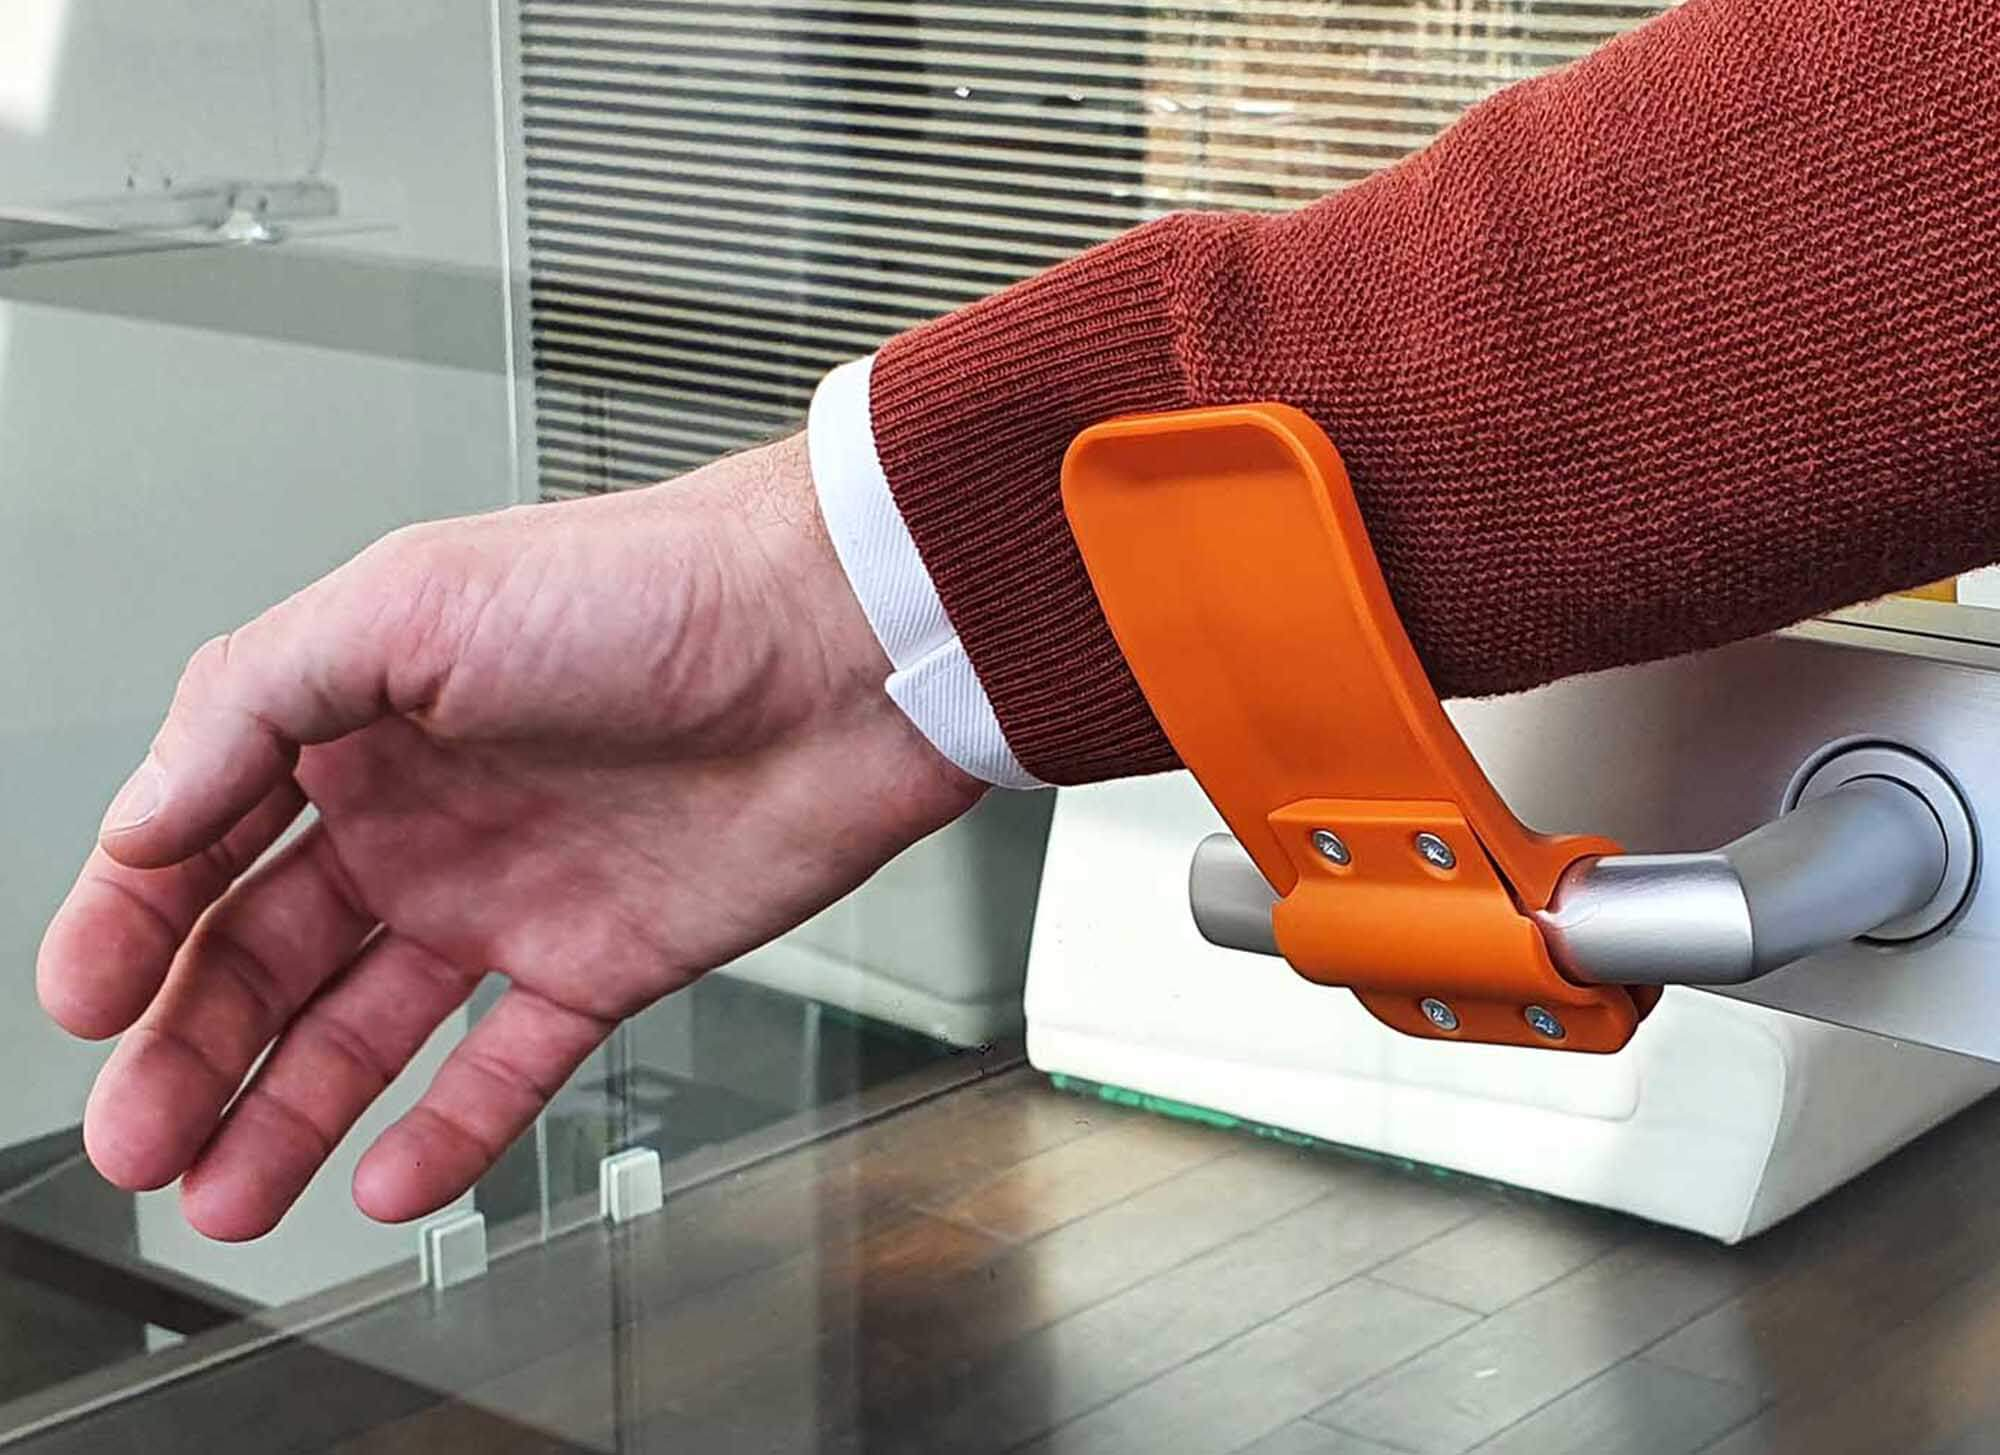 cylindrical, wide - hands-free door opener